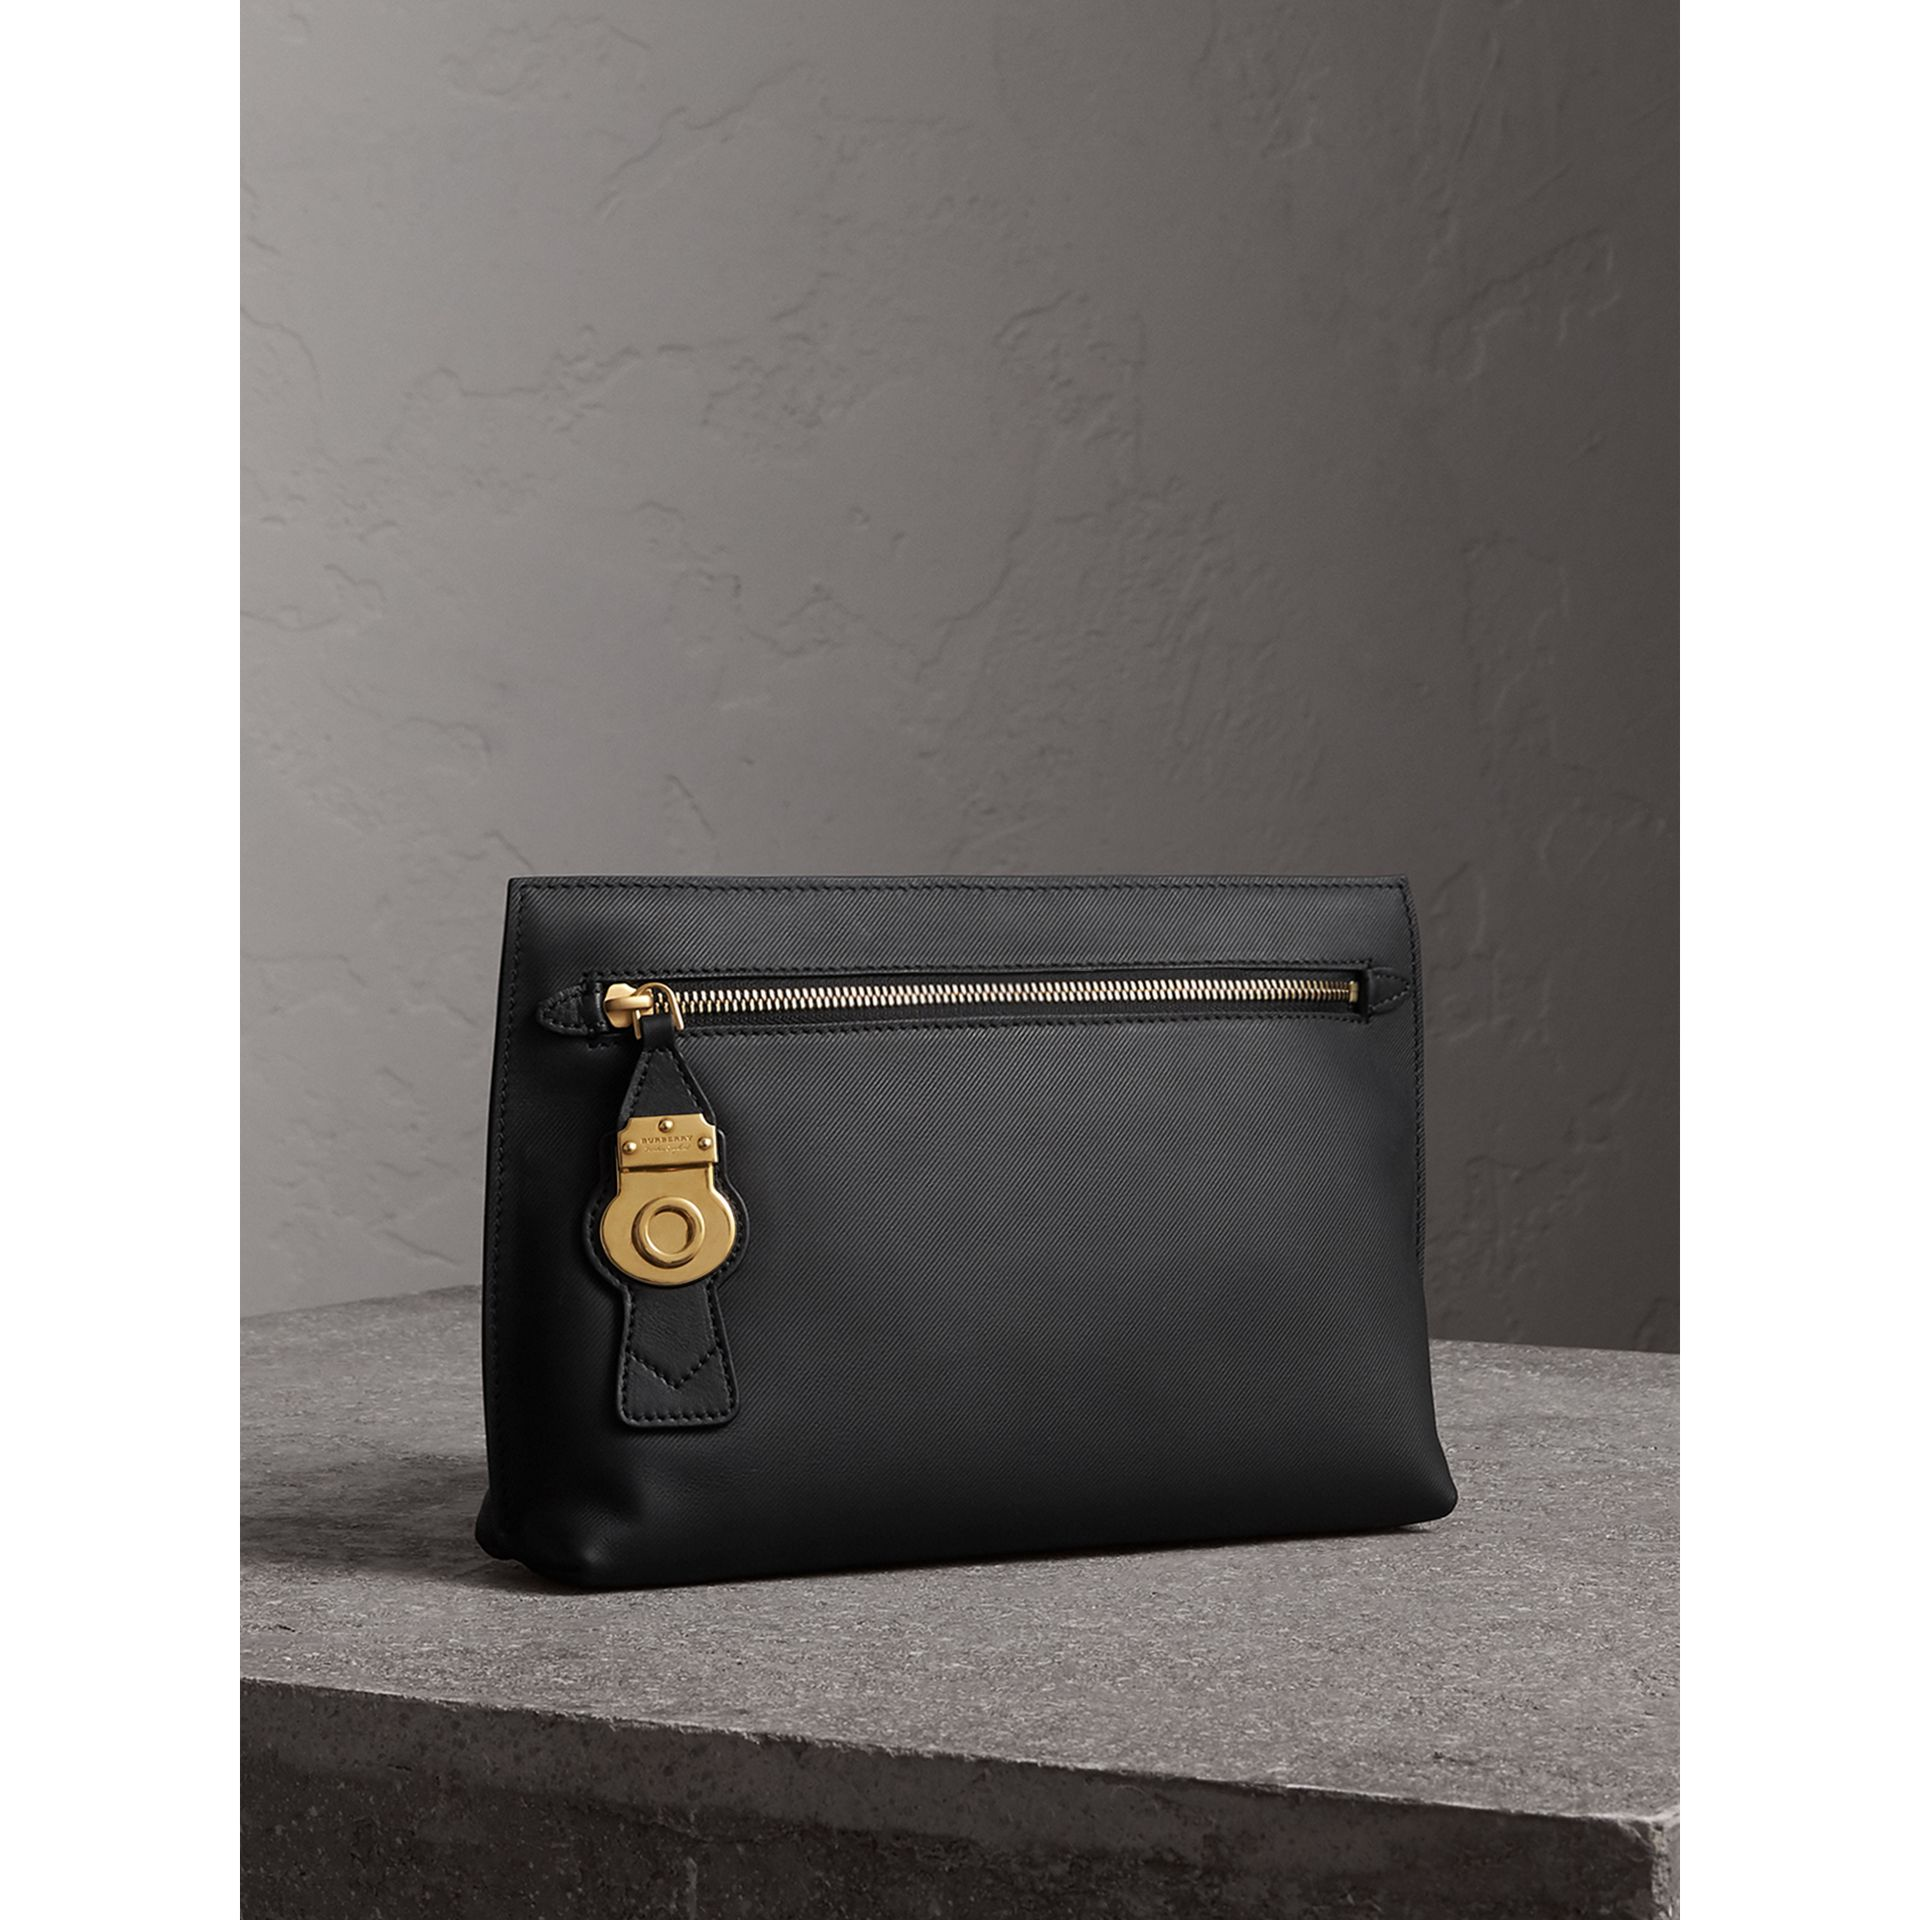 Trench Leather Wristlet Pouch in Black - Women | Burberry Hong Kong - gallery image 6